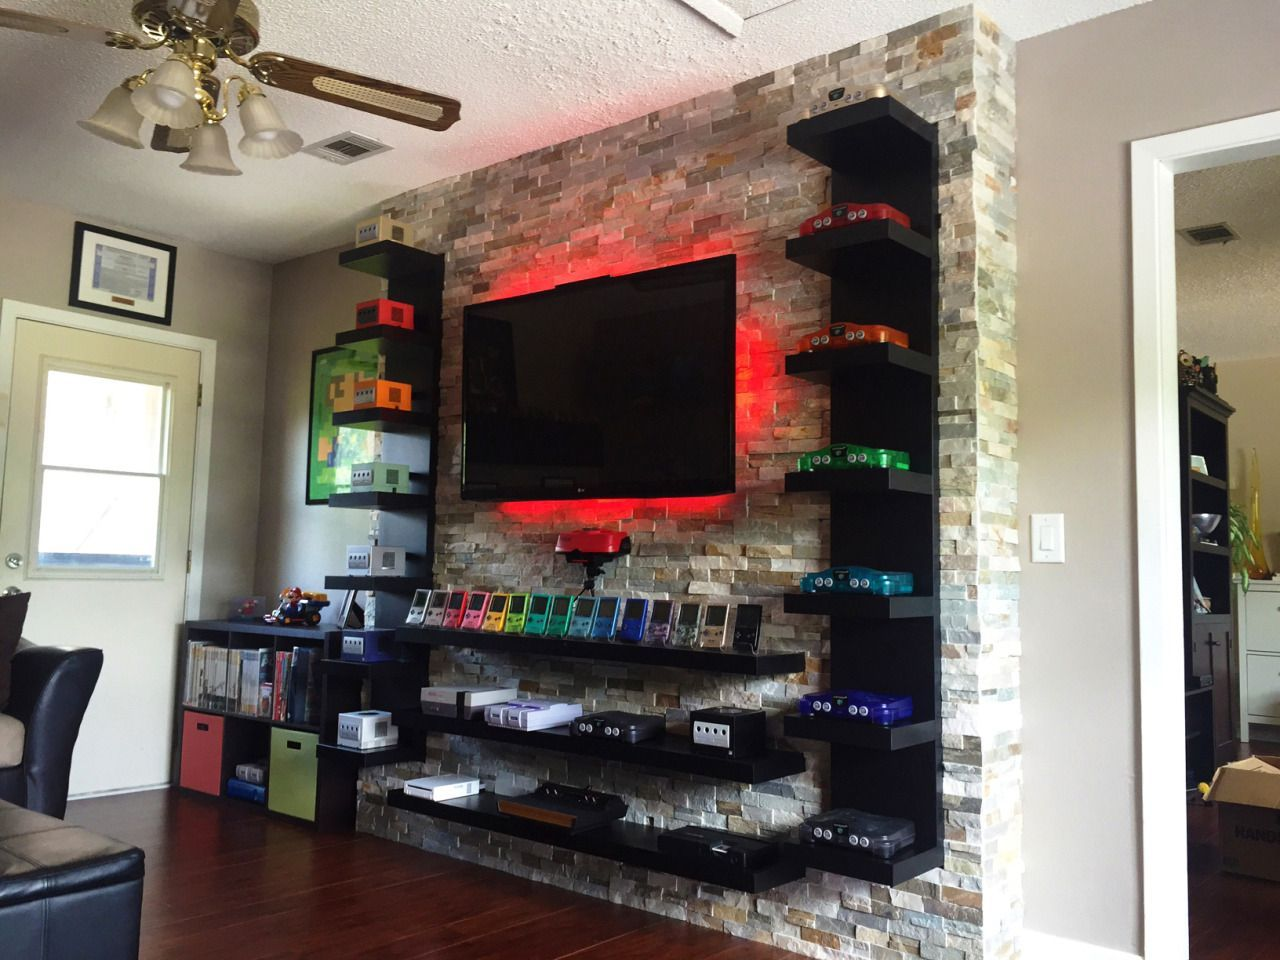 25 Best Game Room Ideas 2019 (A Guide for Gamers) images